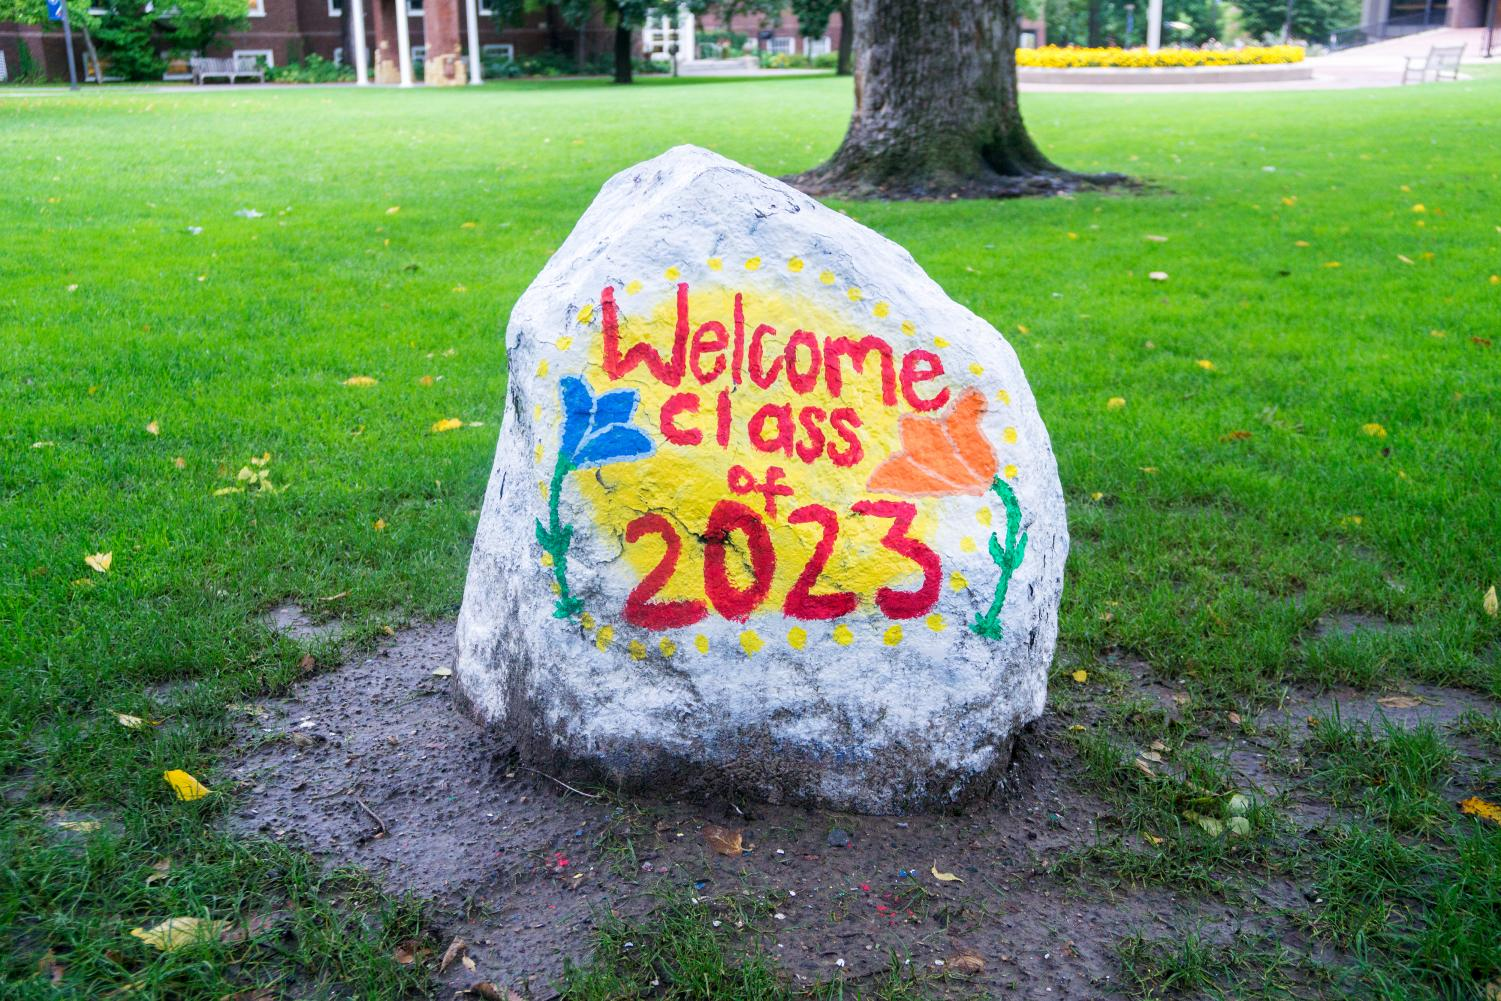 Old Main rock decorated in honor of Macalester class of 2023. Photo by Summer Xu '20.